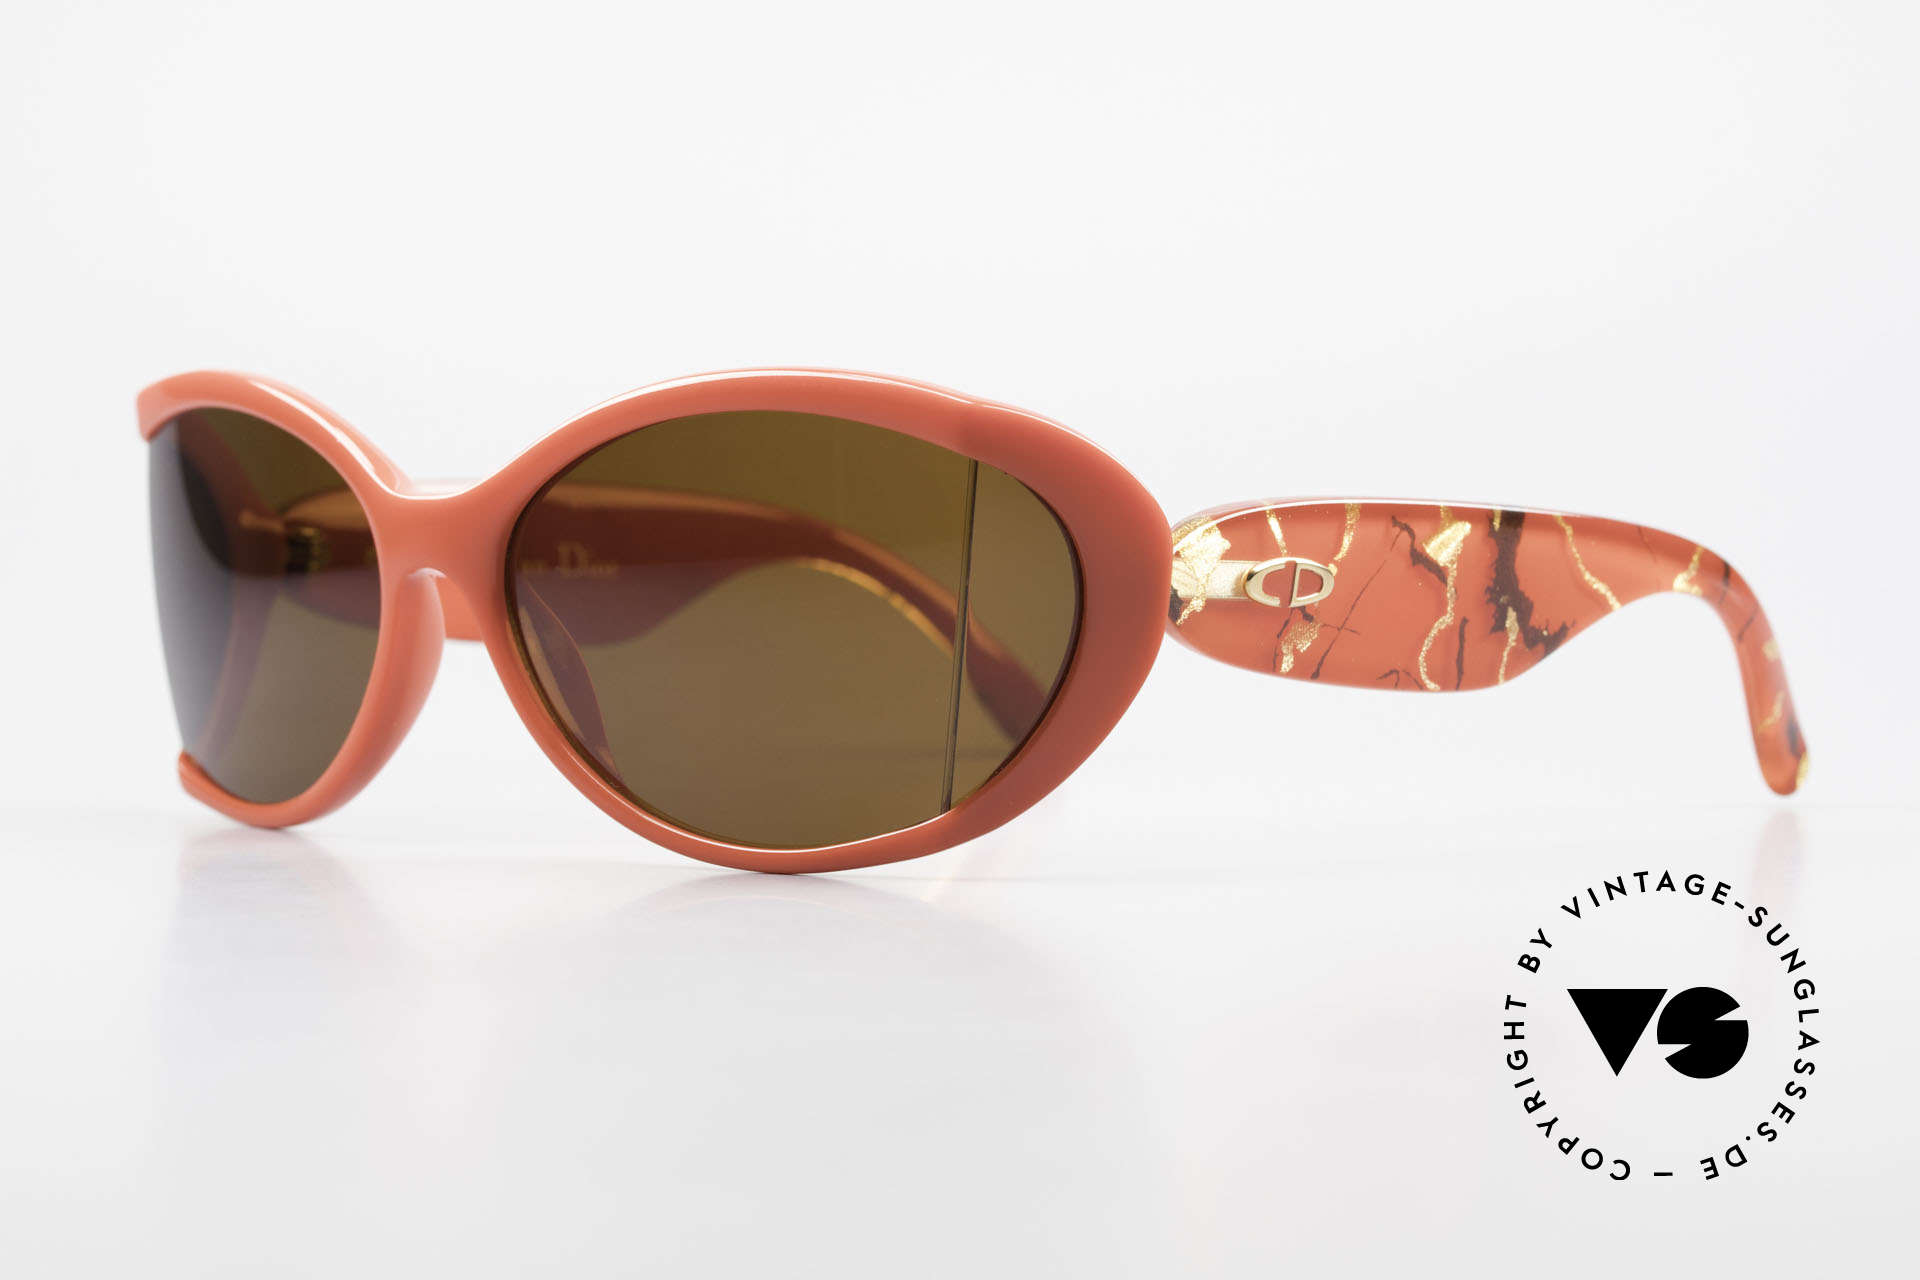 Christian Dior 2439 80's Sunglasses Side Shield, the incredible OPTYL material does not seem to age, Made for Women